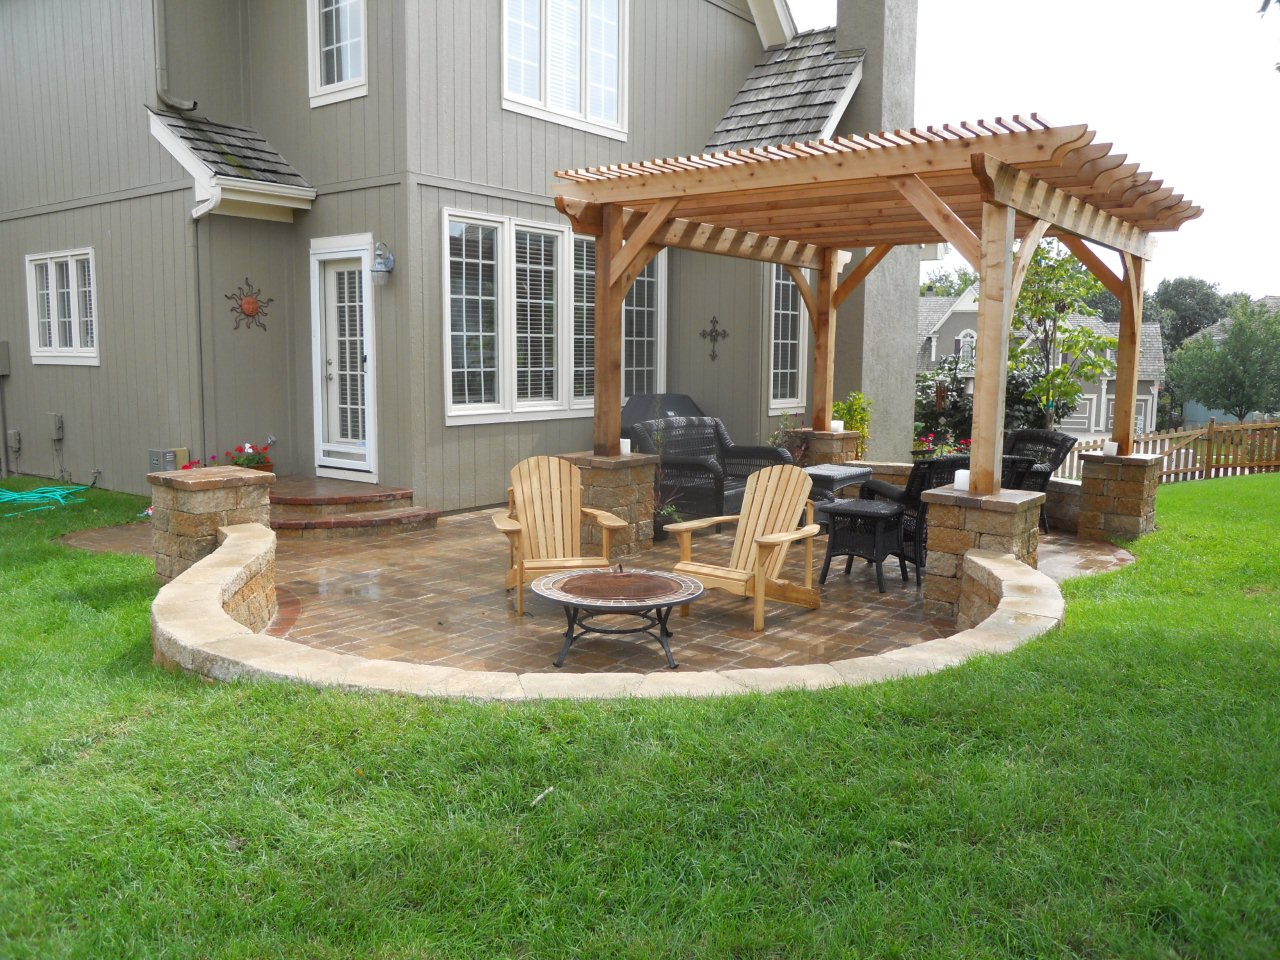 Small Backyard Covered Patio Ideas